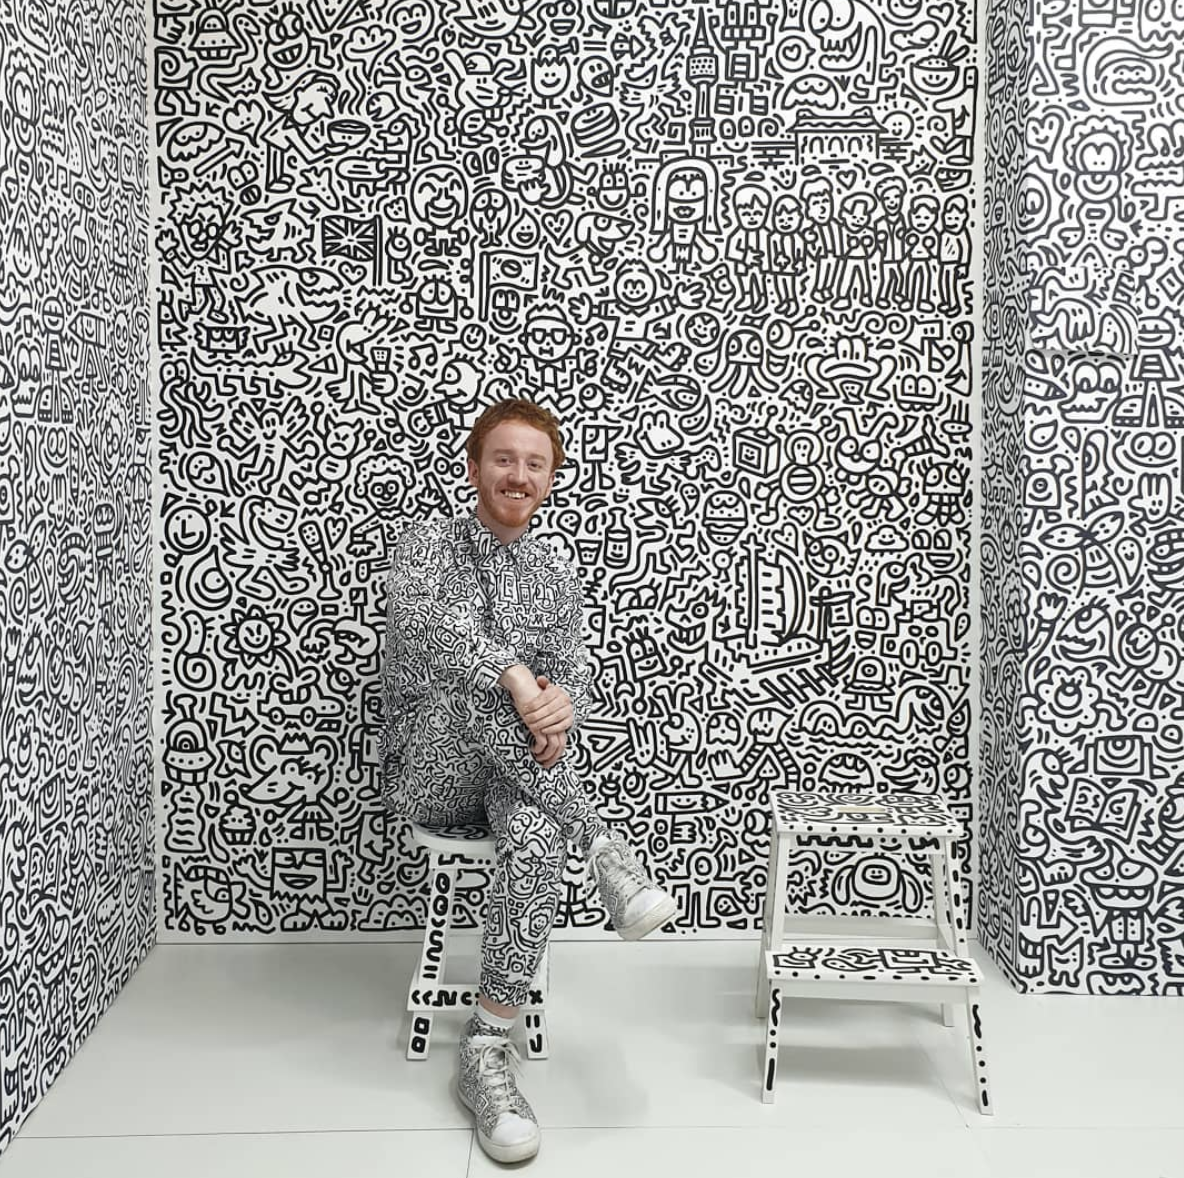 Sam Cox (AKA Mr. Doodle) posing in front of his art in Korea.